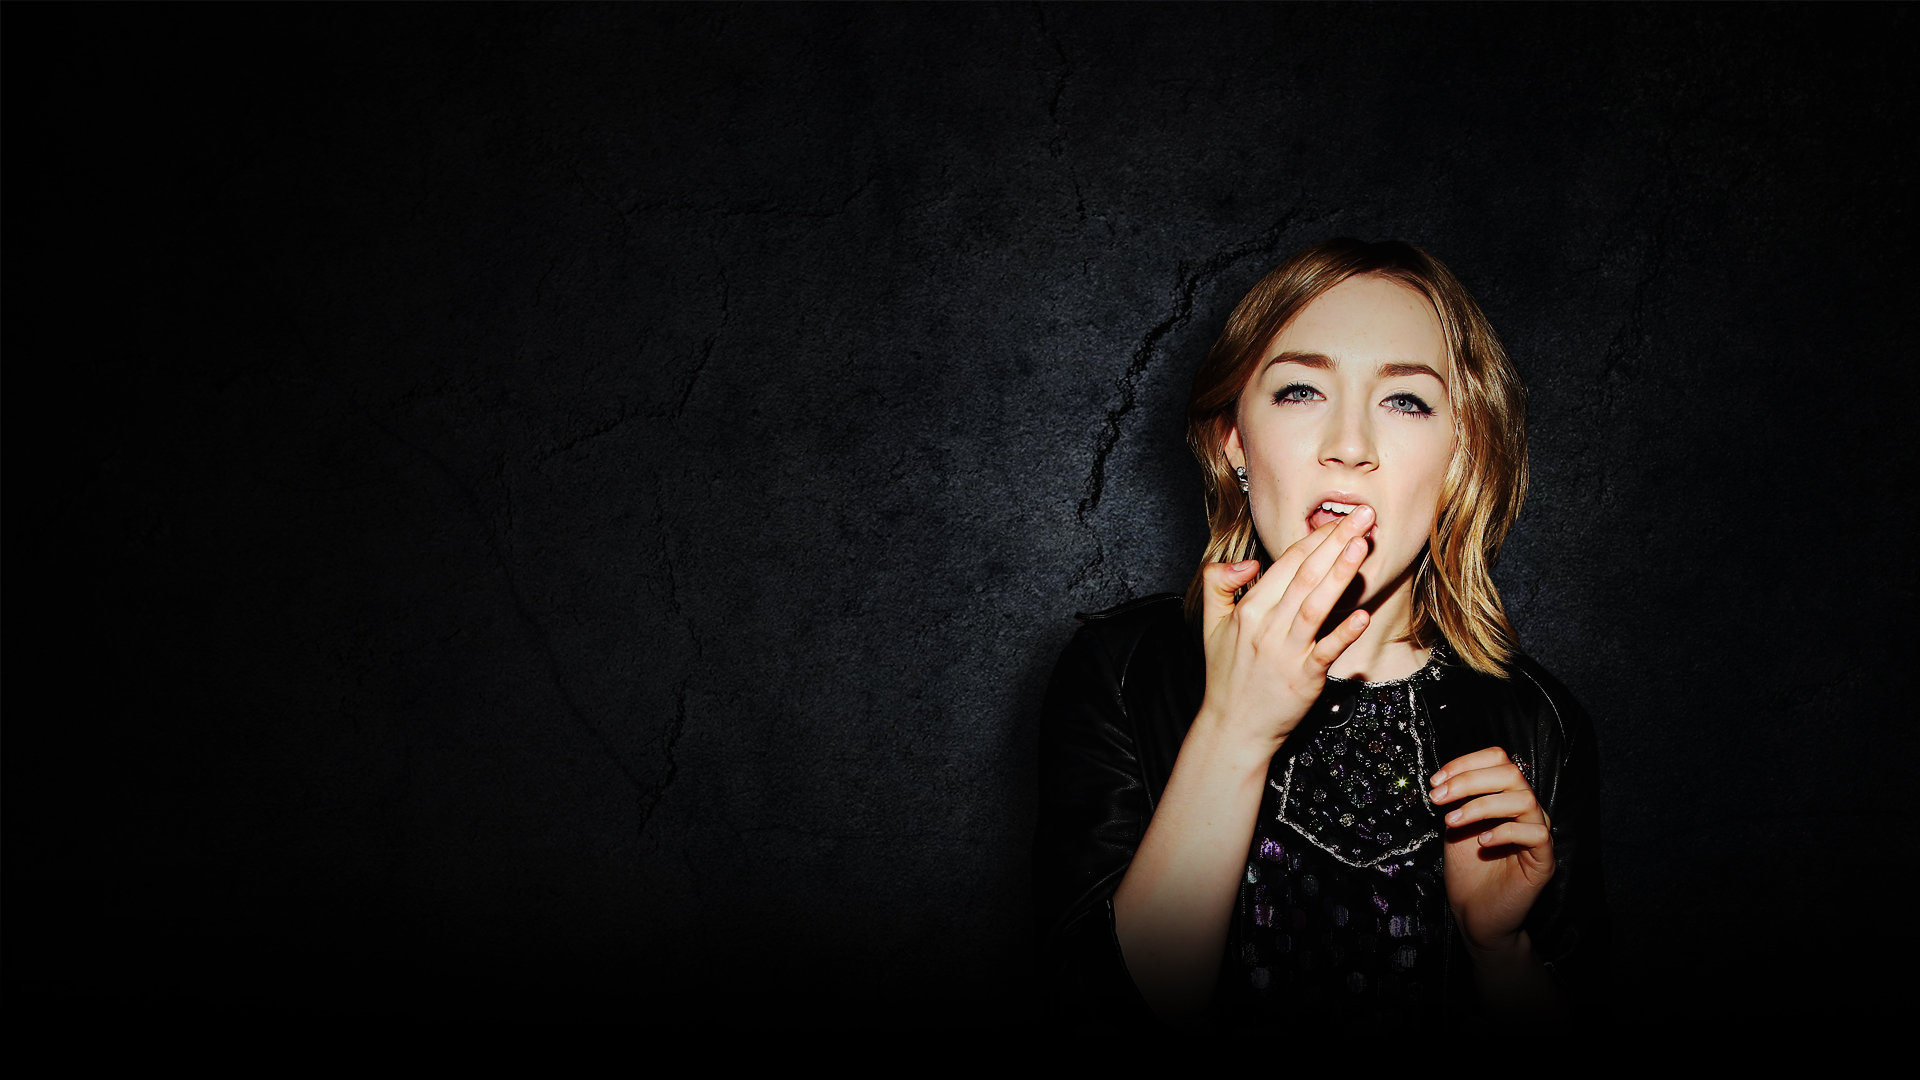 Download hd 1920x1080 Saoirse Ronan desktop wallpaper ID:188717 for free